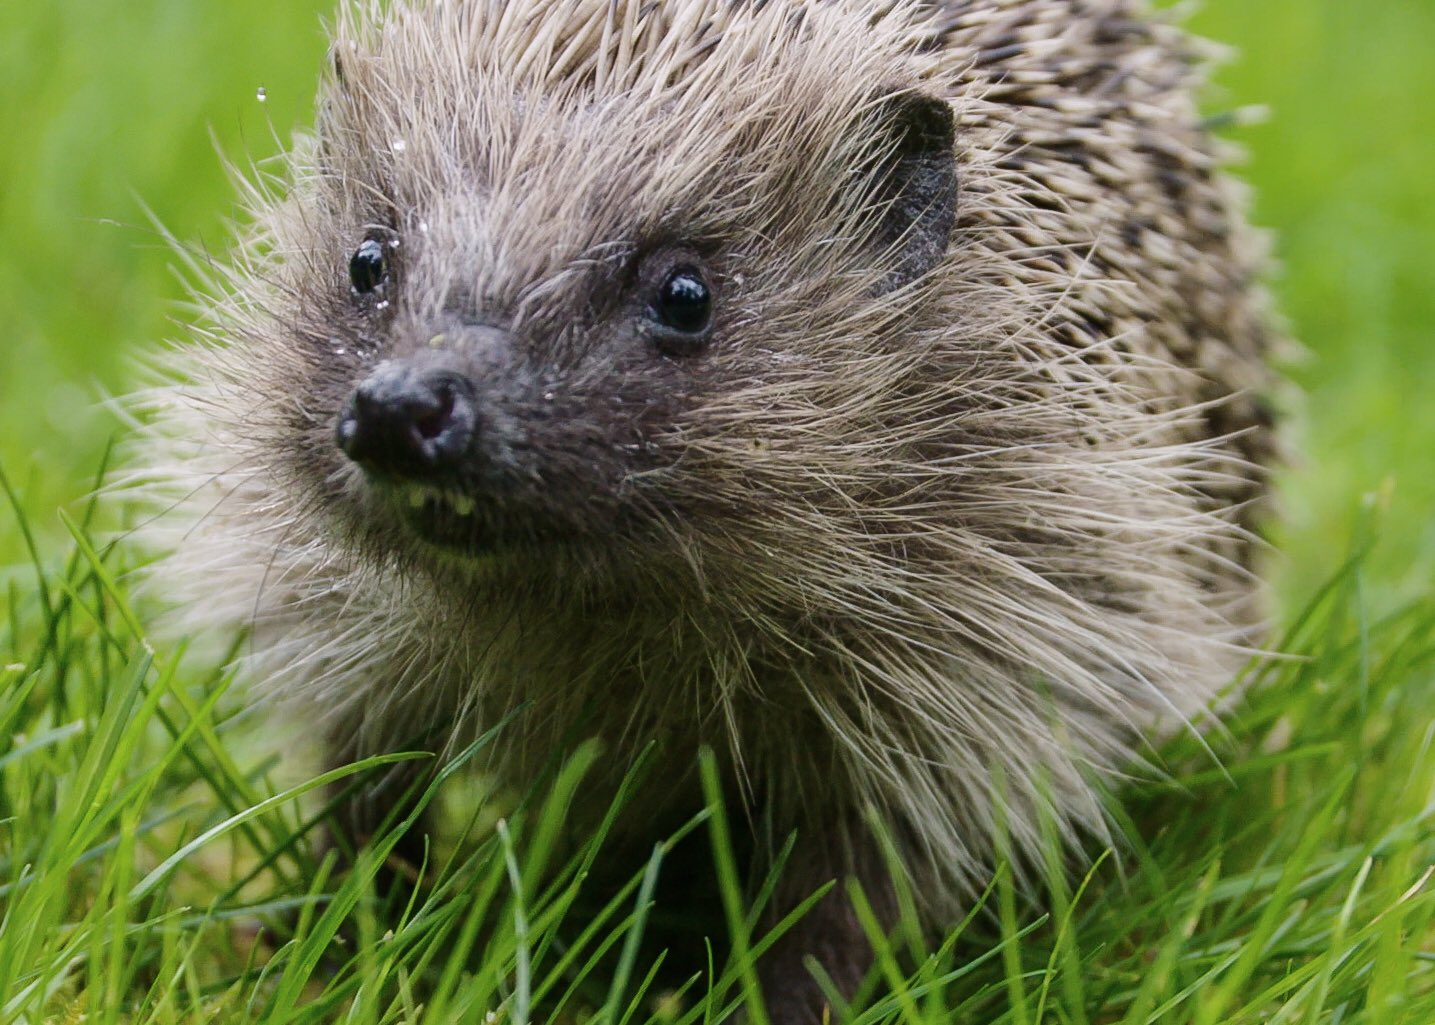 So happy to be filming hedgehogs with the brilliant @SteveBackshall for @athenafilms - @channel5_tv - Bri https://t.co/Rq6FmOa4gx